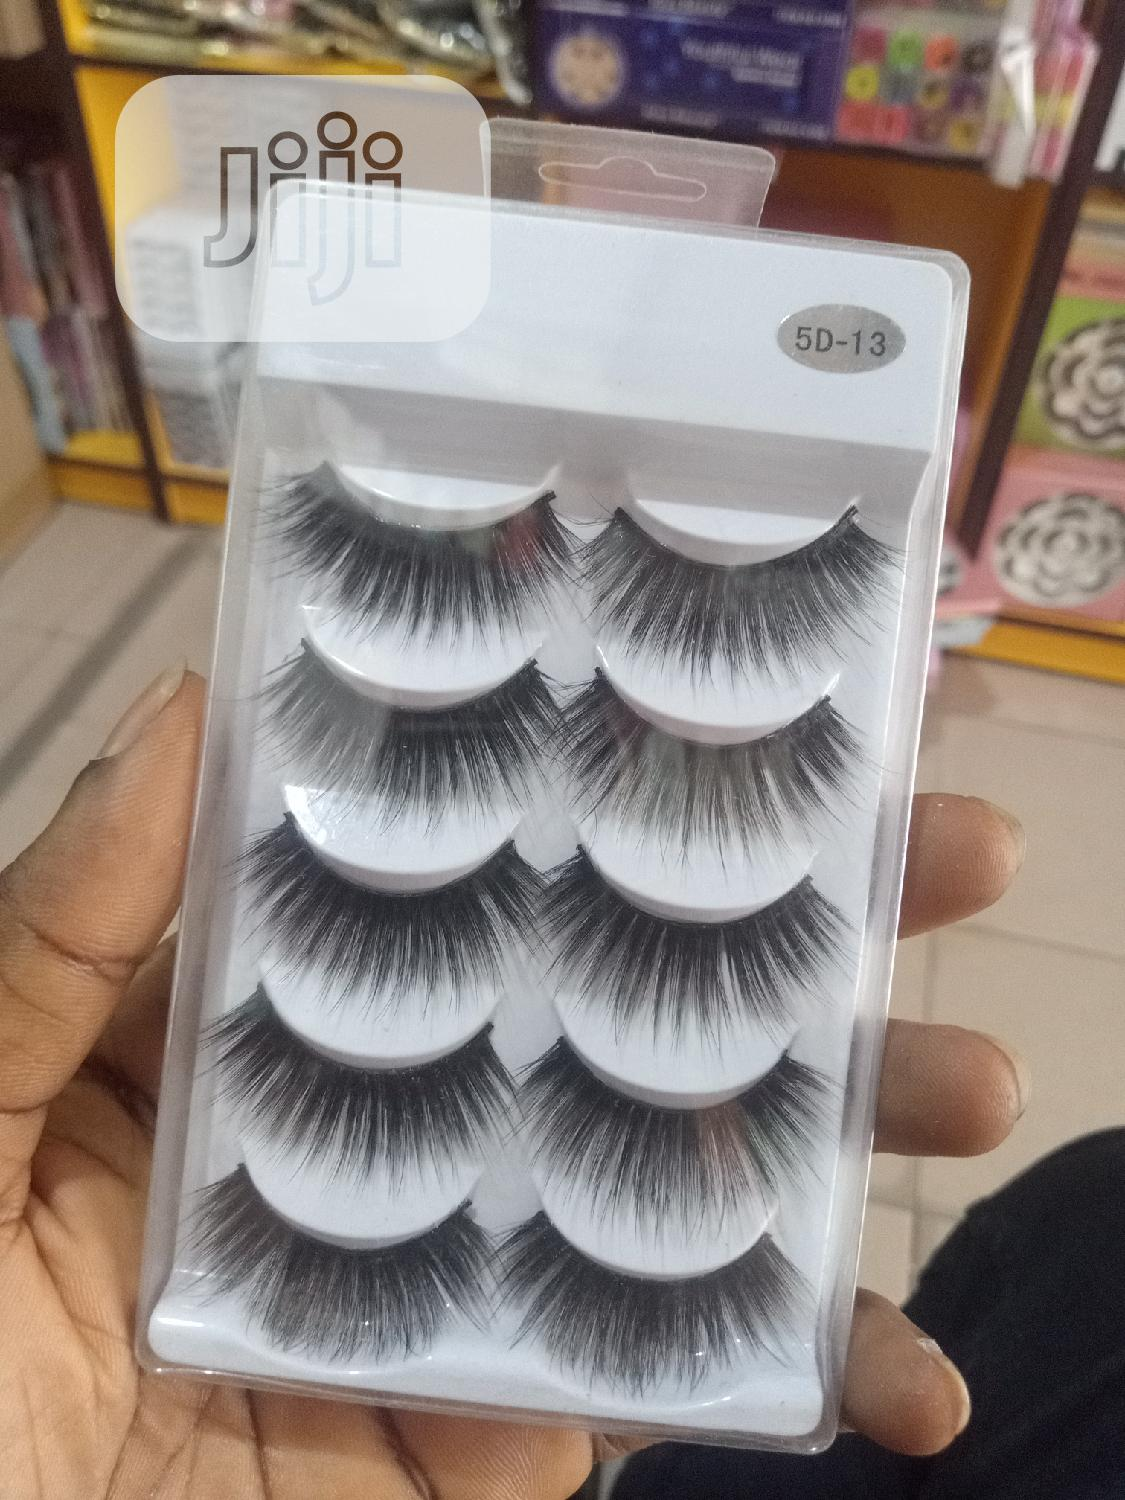 5-in-1 Human Lashes | Makeup for sale in Amuwo-Odofin, Lagos State, Nigeria